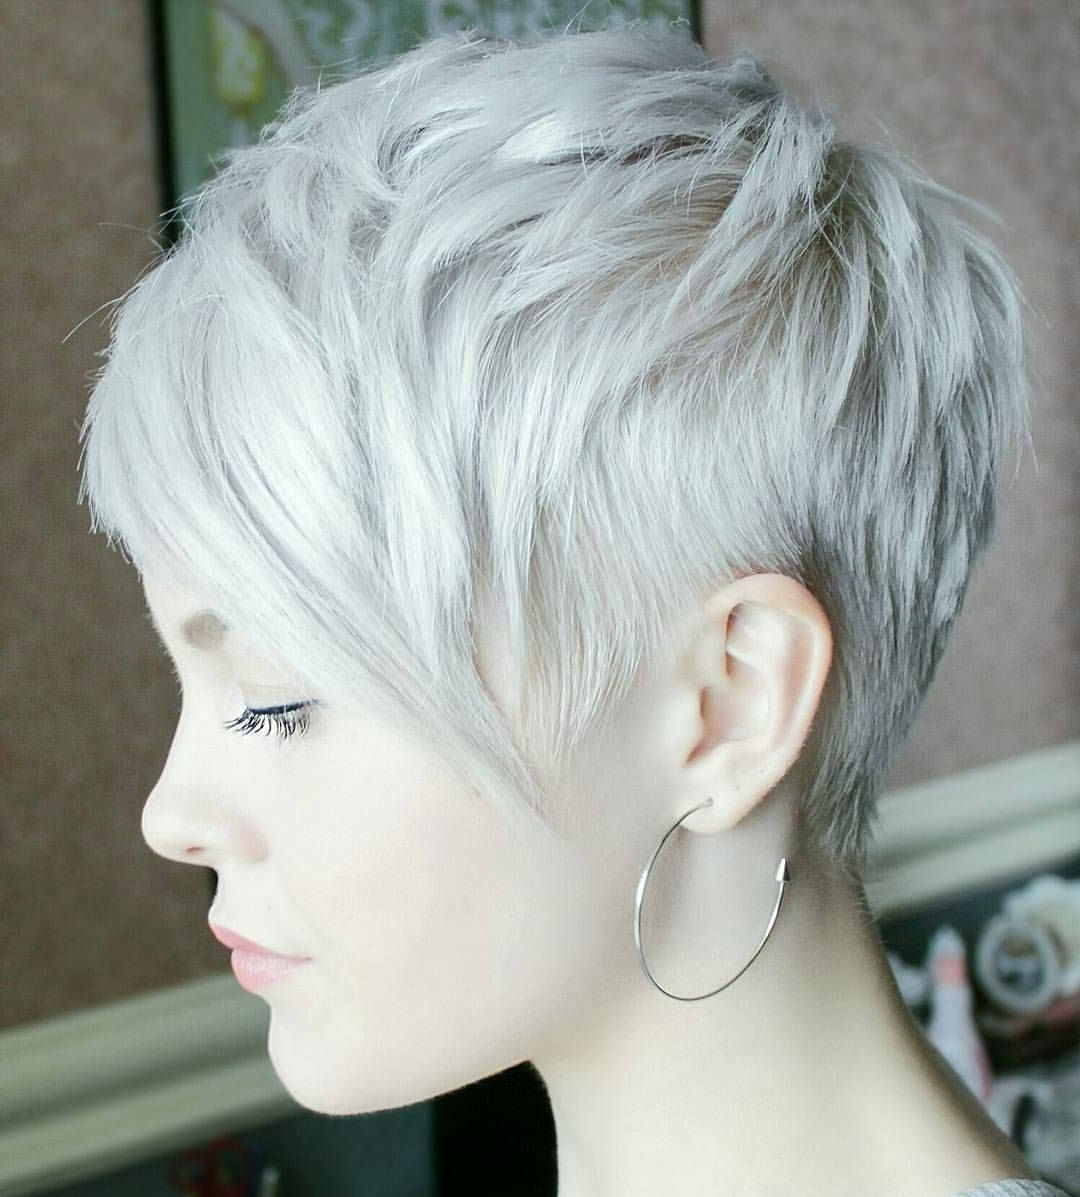 50 Trendsetting Short And Long Pixie Haircut Styles — Cutest Of Them Pertaining To Sweeping Pixie Hairstyles With Undercut (View 8 of 20)